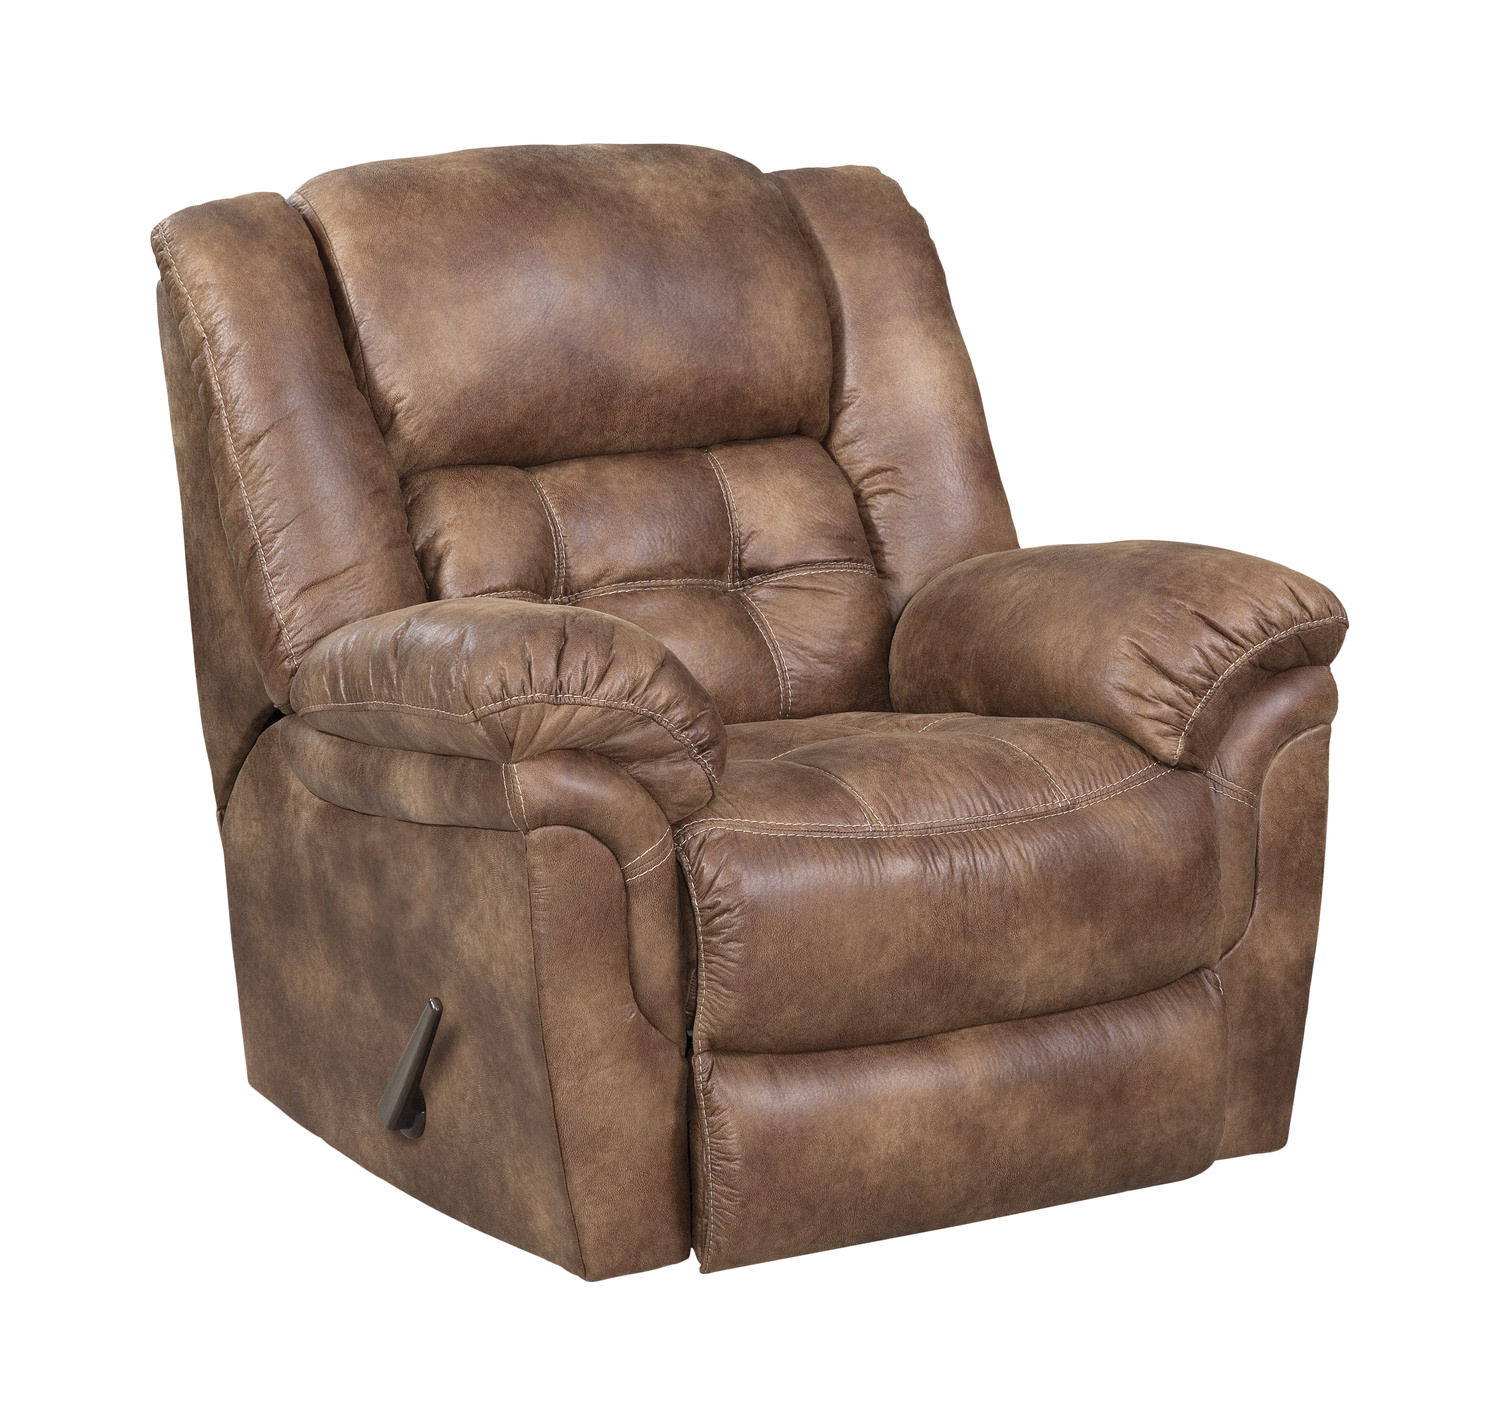 Rocking recliner chairs - Frontier Power Rocker Recliner